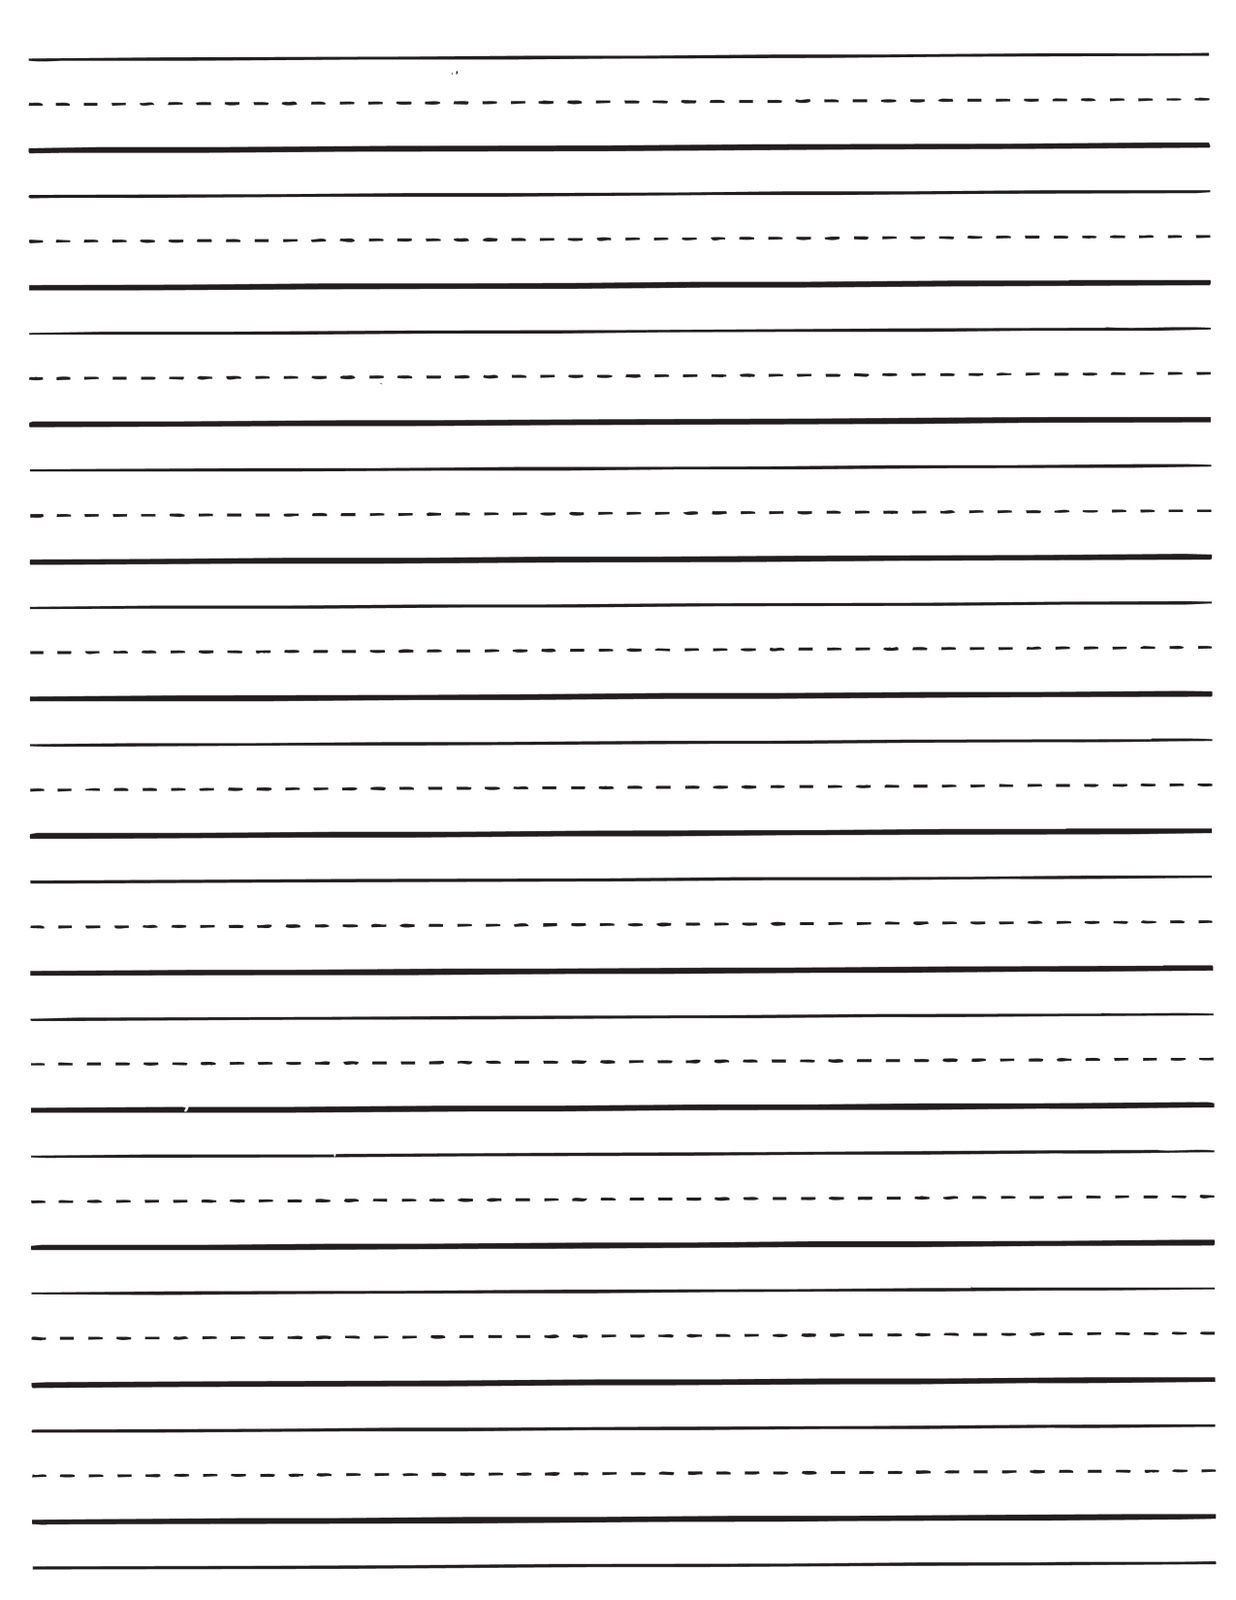 Lined paper for writing letters